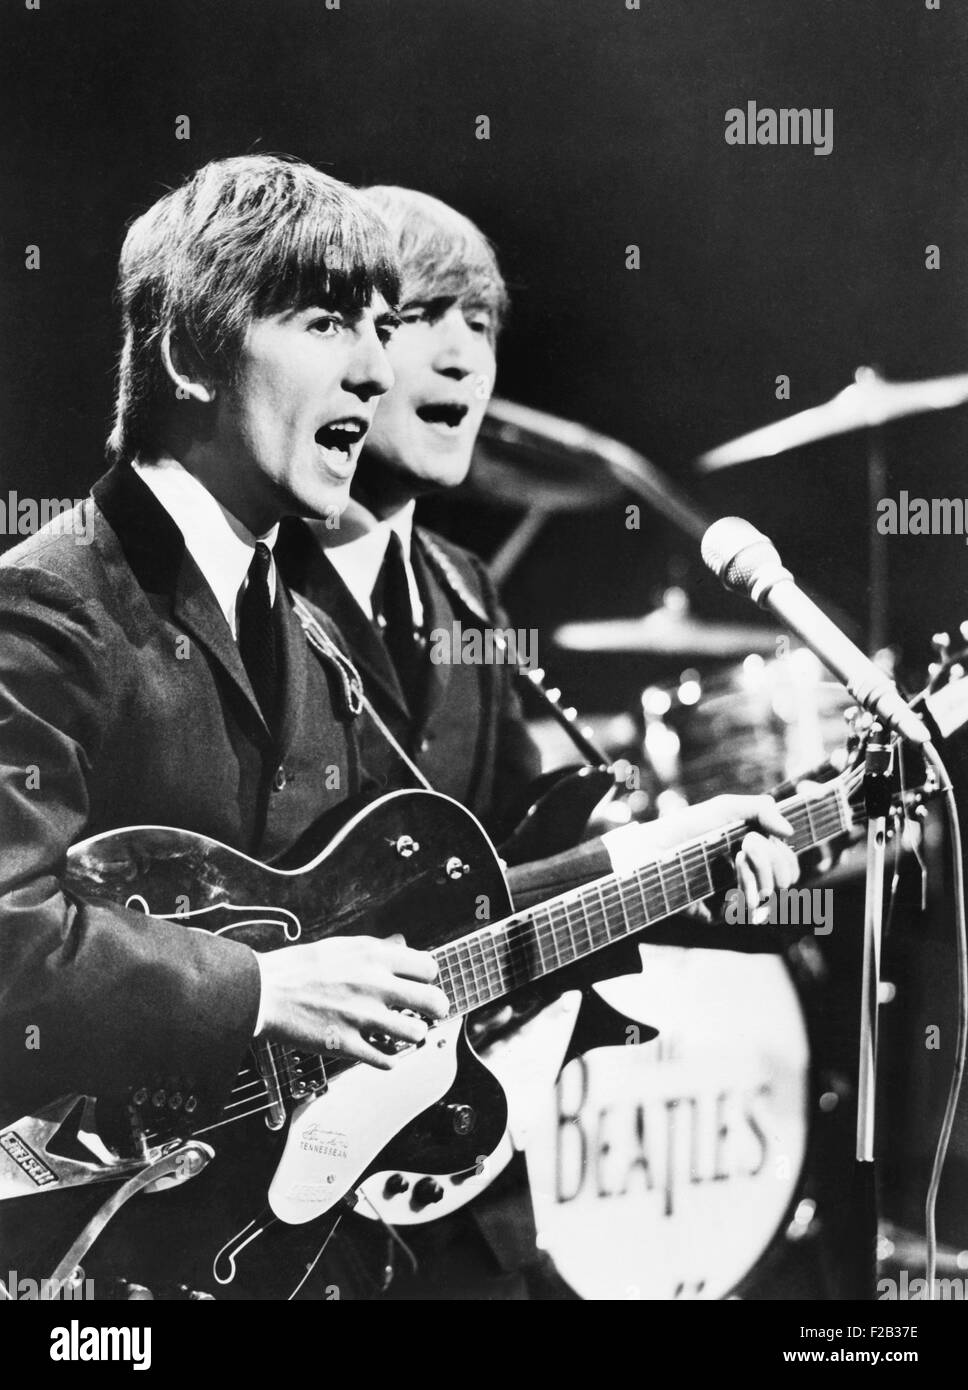 George Harrison (left) and John Lennon of the Beatles. Ca. 1964. (CSU_2015_7_276) - Stock Image